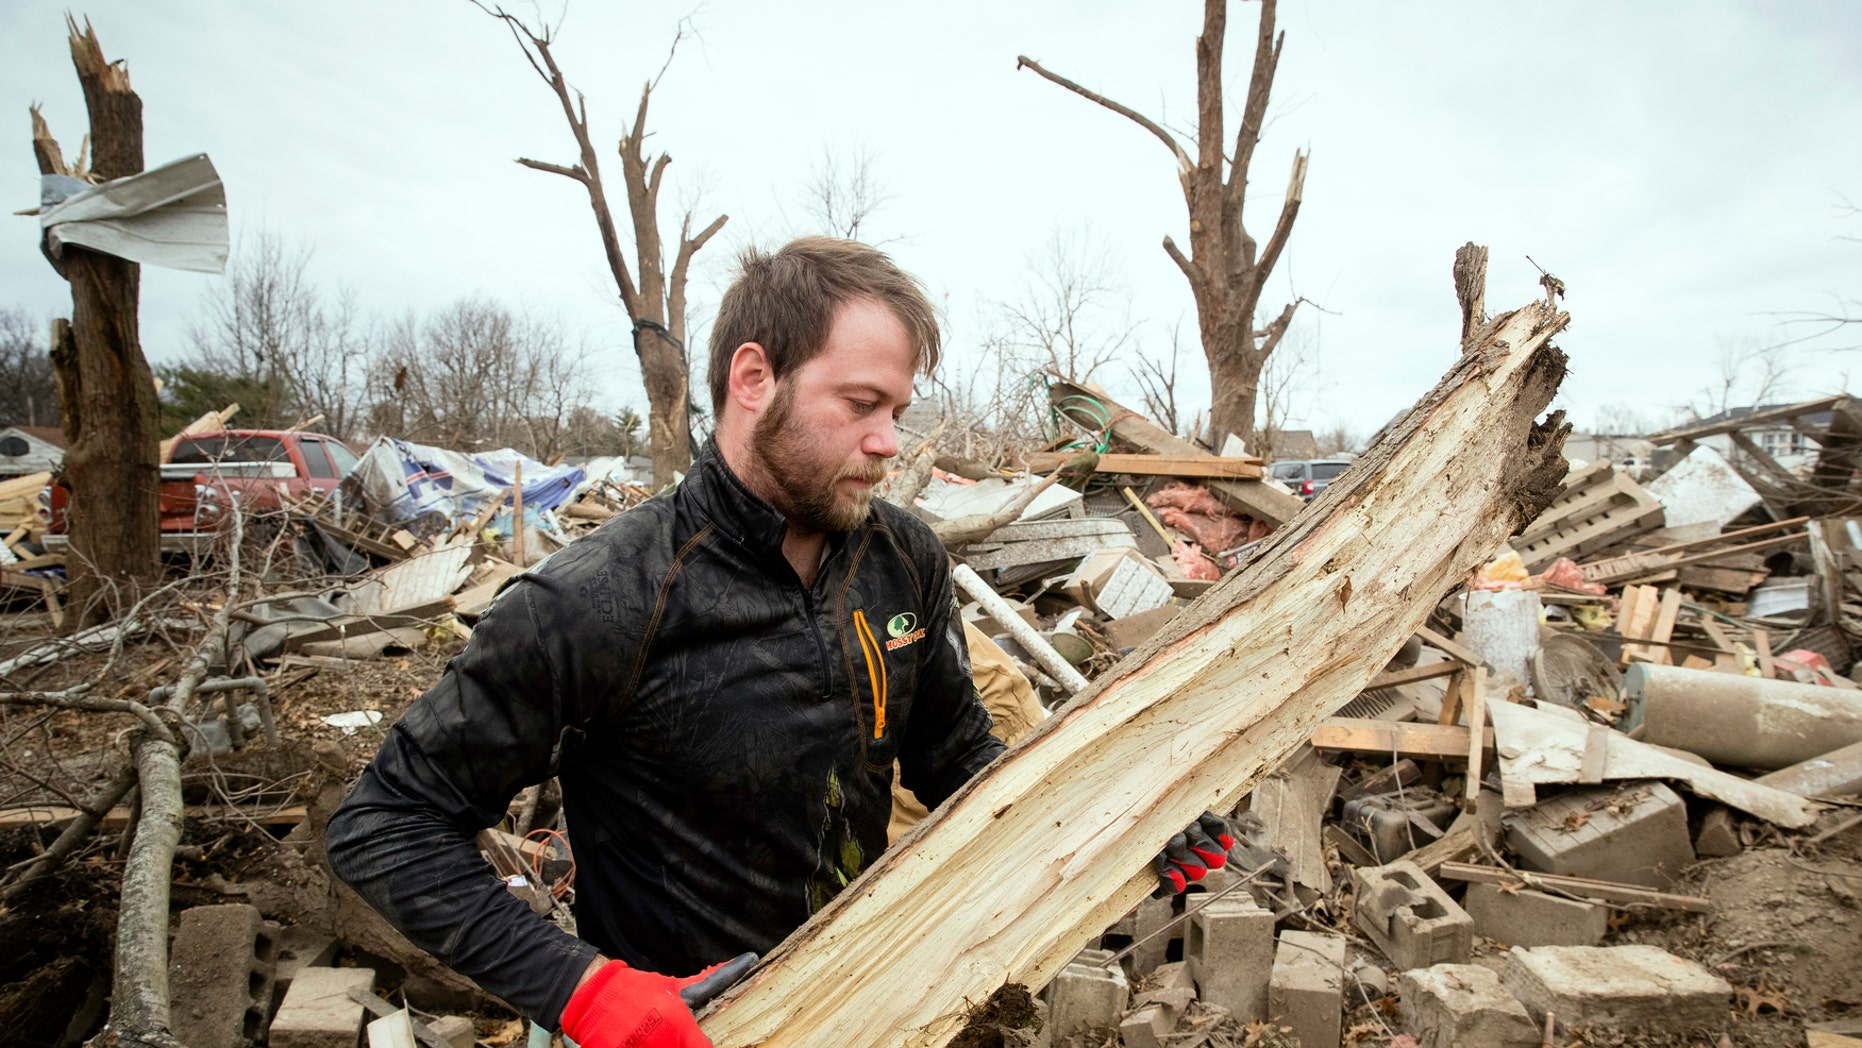 Steven Tirpak cleans debris from the remains of his two-story home in Taylorville, Ill., Sunday, Dec. 2, 2018. Tirpak and his infant were not home when the storm struck. The National Weather Service says multiple tornadoes touched down in central Illinois, damaging dozens of structures and injuring multiple people. (Ted Schurter/The State Journal-Register via AP)